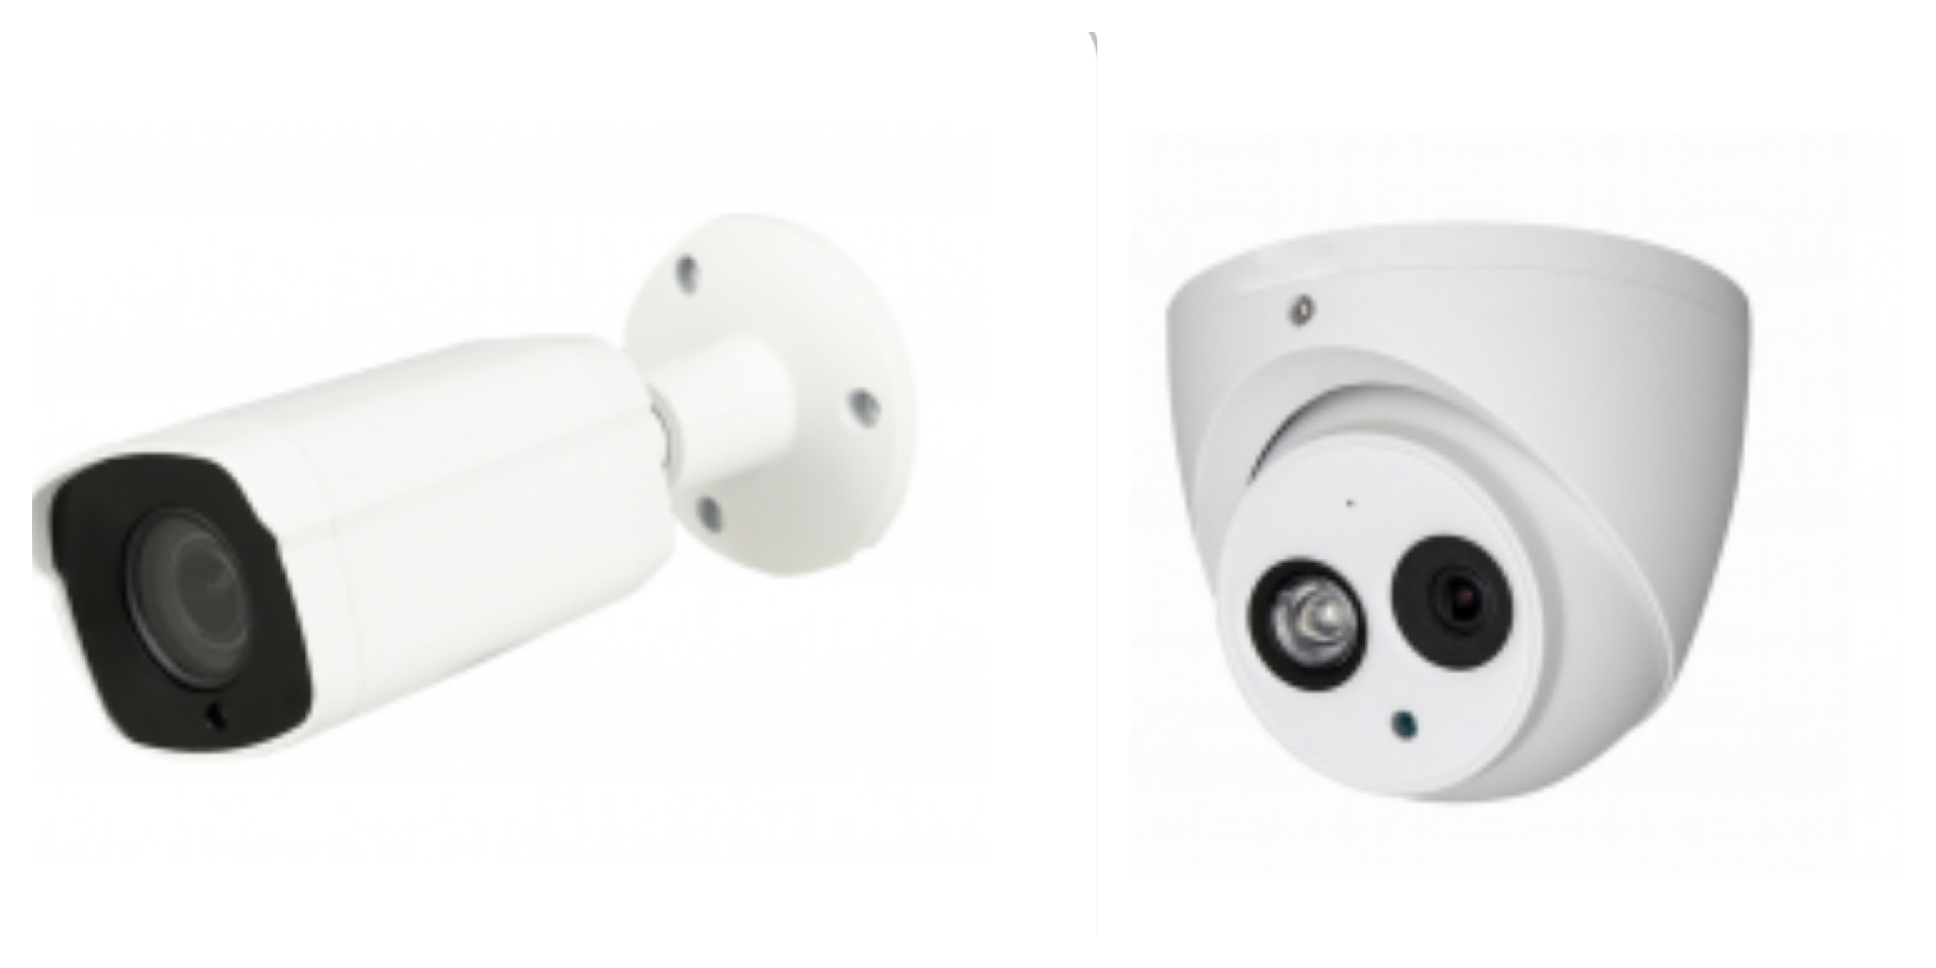 Our camera systems add security to your home or business